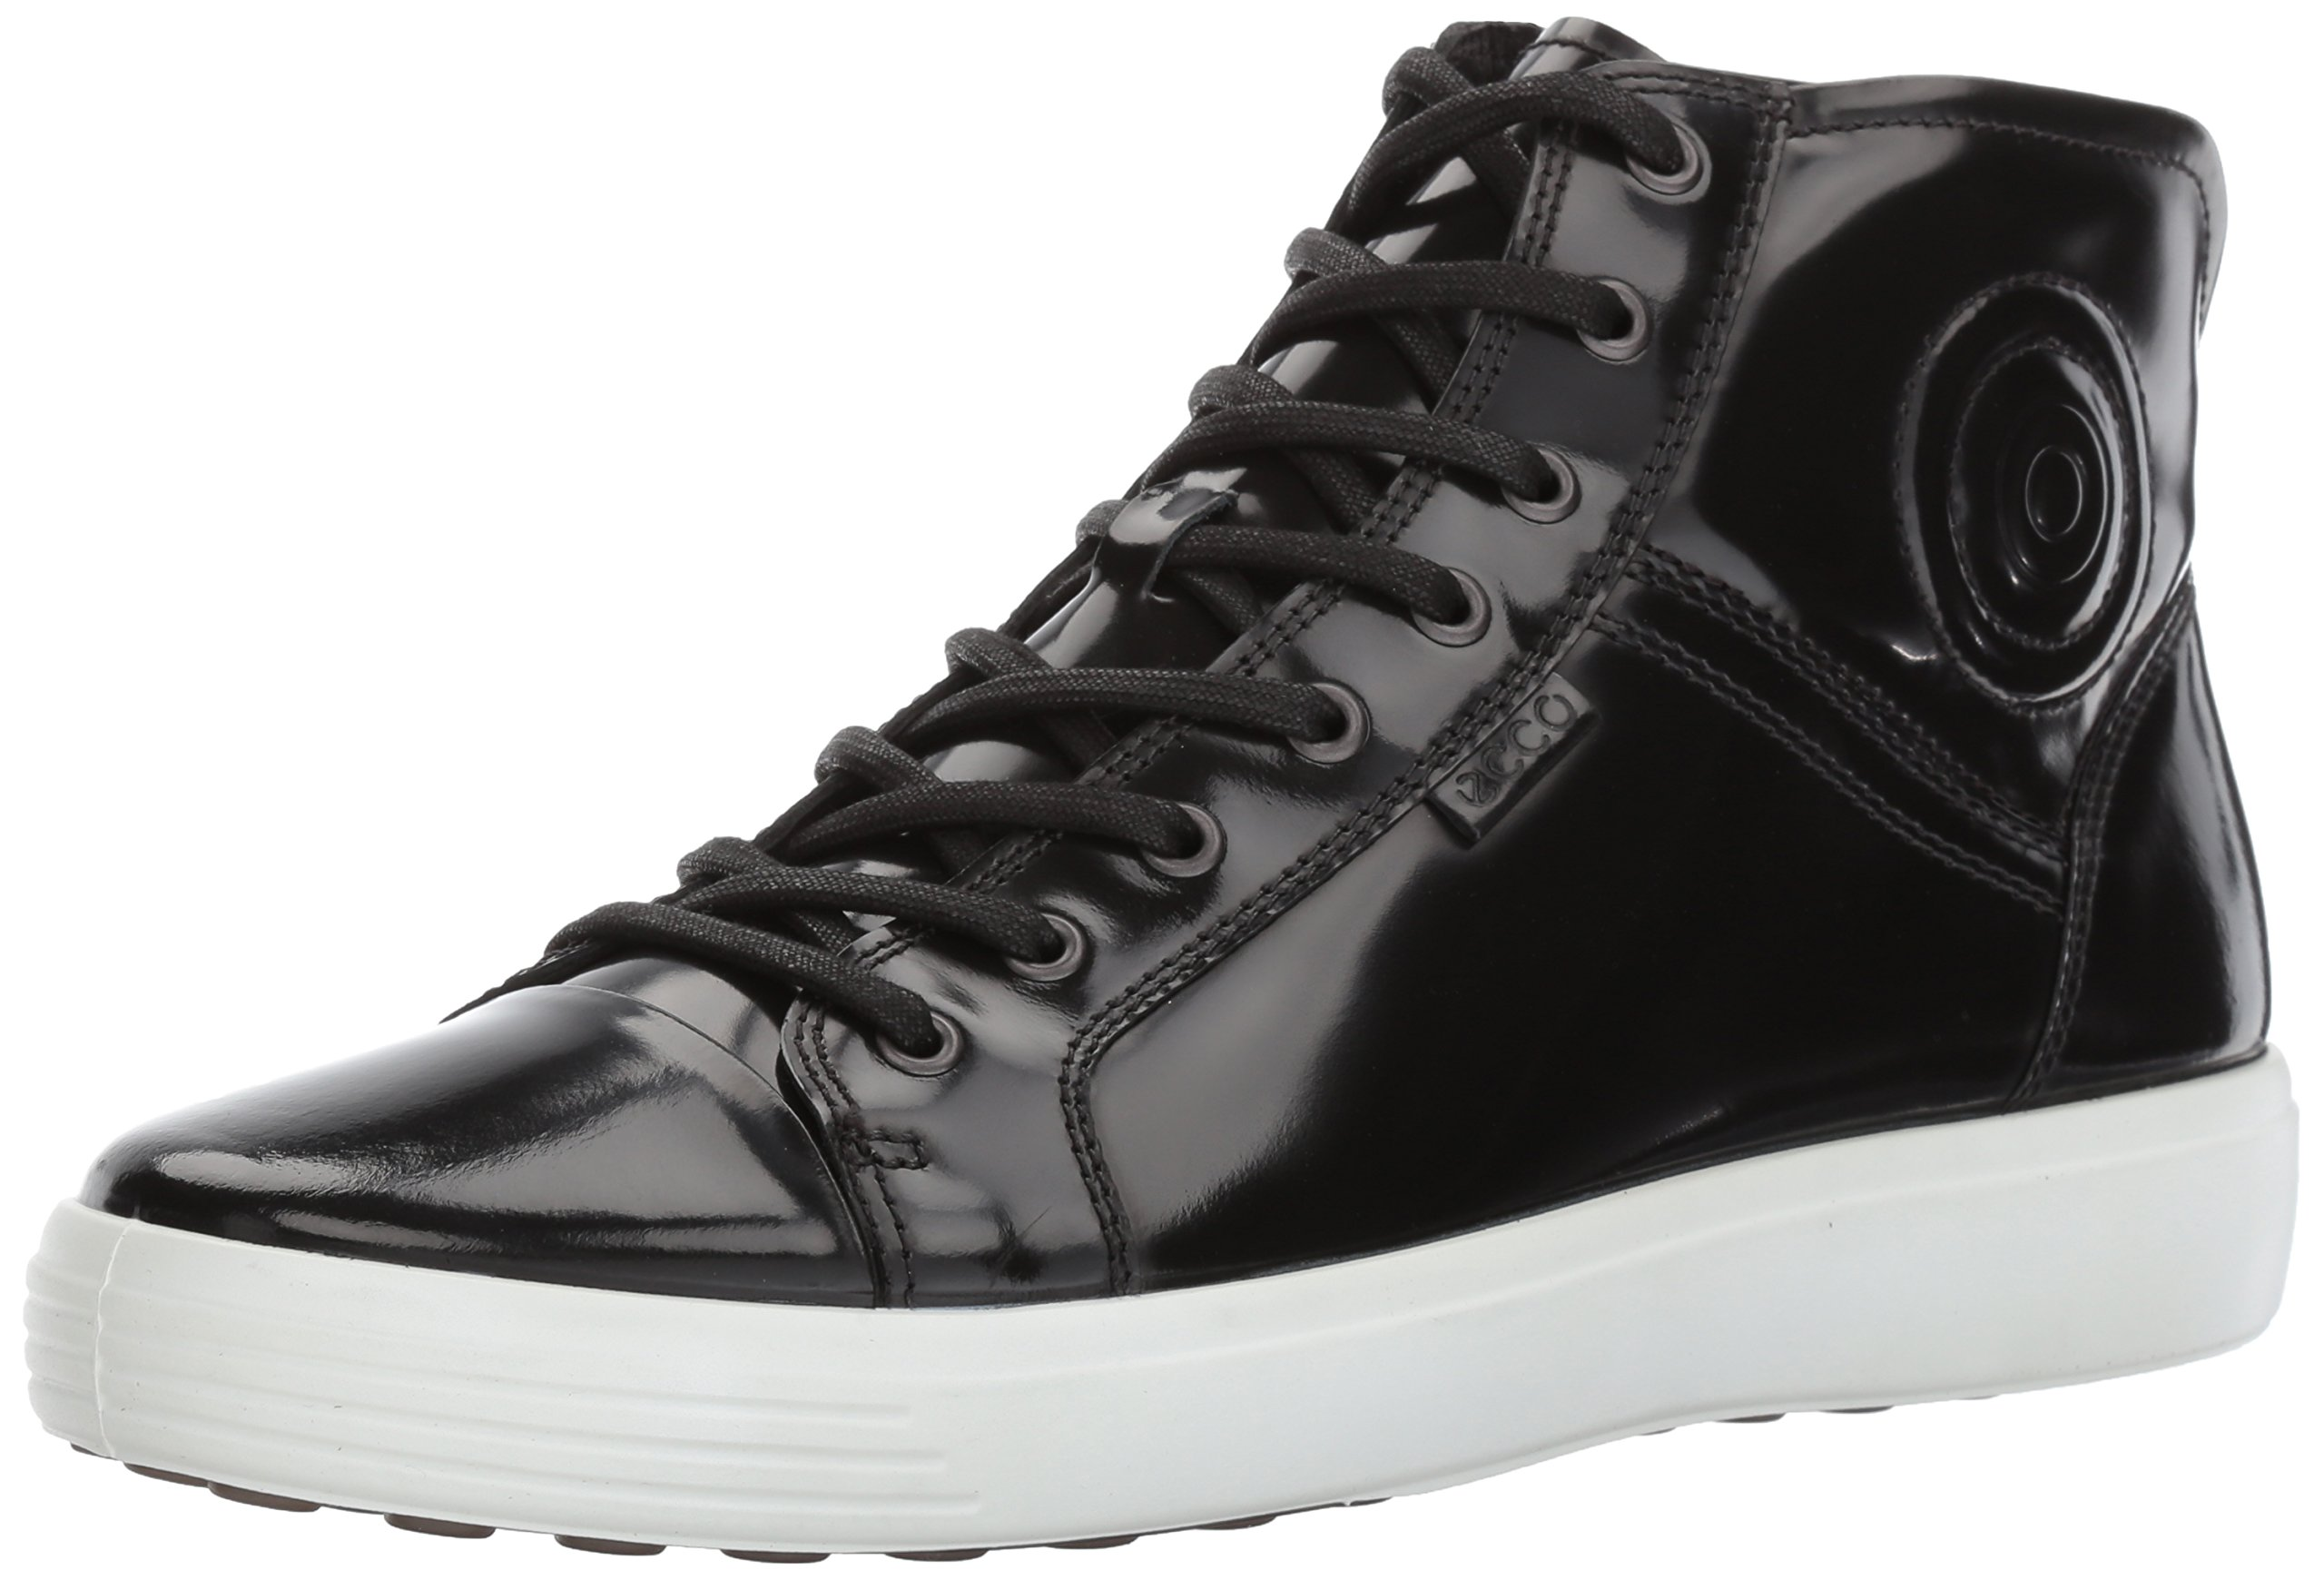 ECCO Men's Soft 7 Premium Boot Fashion Sneaker, Black Patent, 41 M EU / 7-7.5 D(M) US